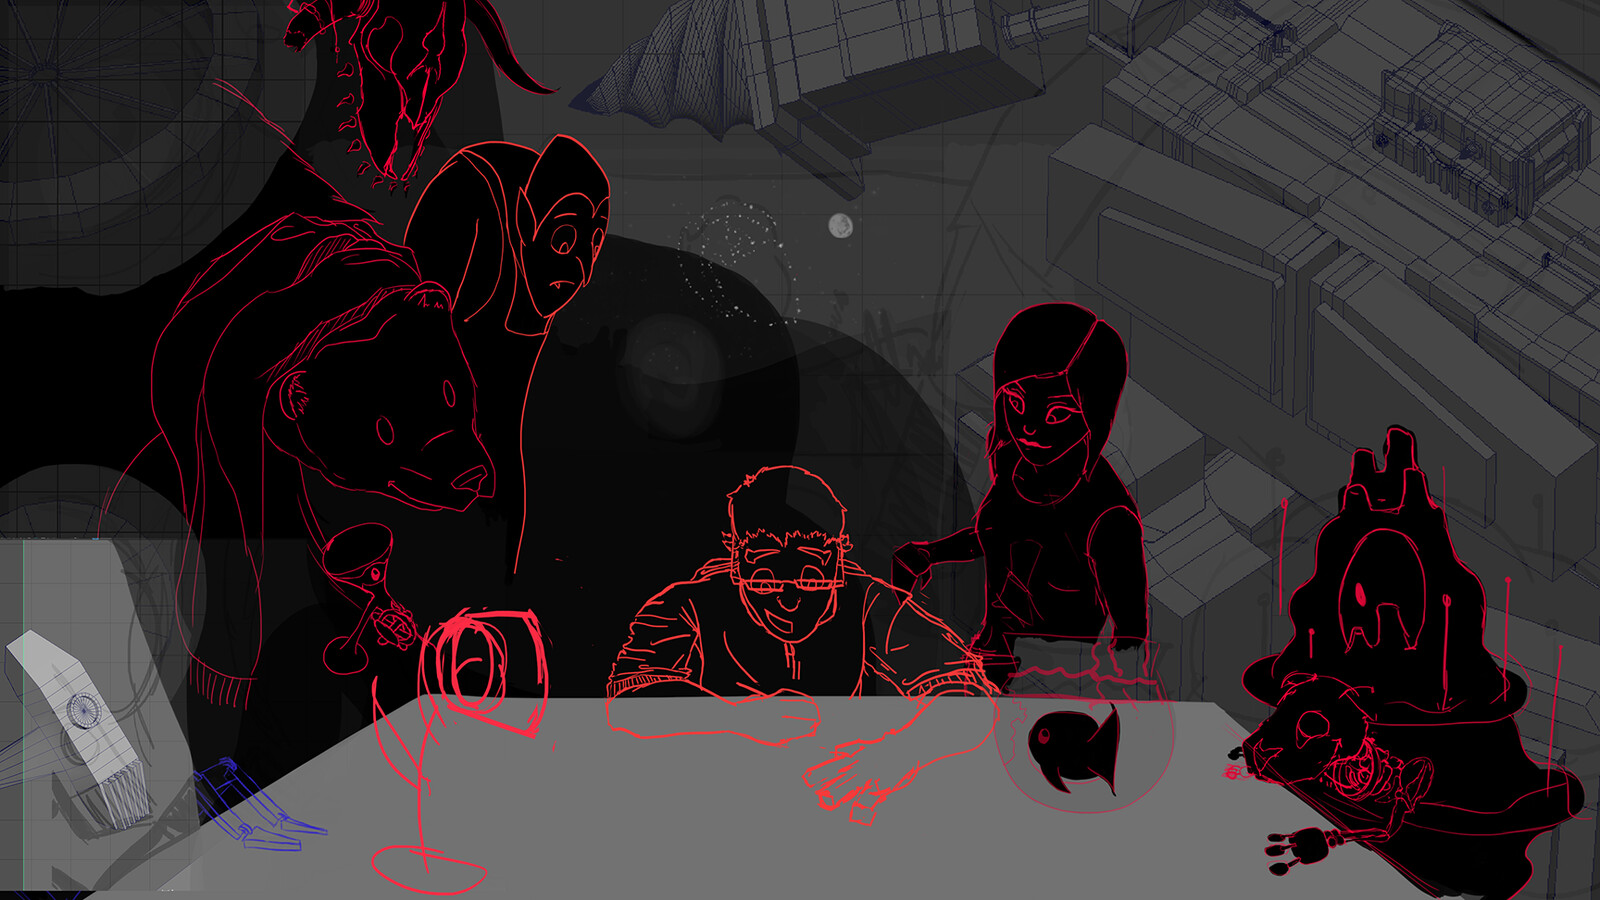 Step 3 - Solidifying silhouettes and details, as well as including 3D models as references for non-organic characters.